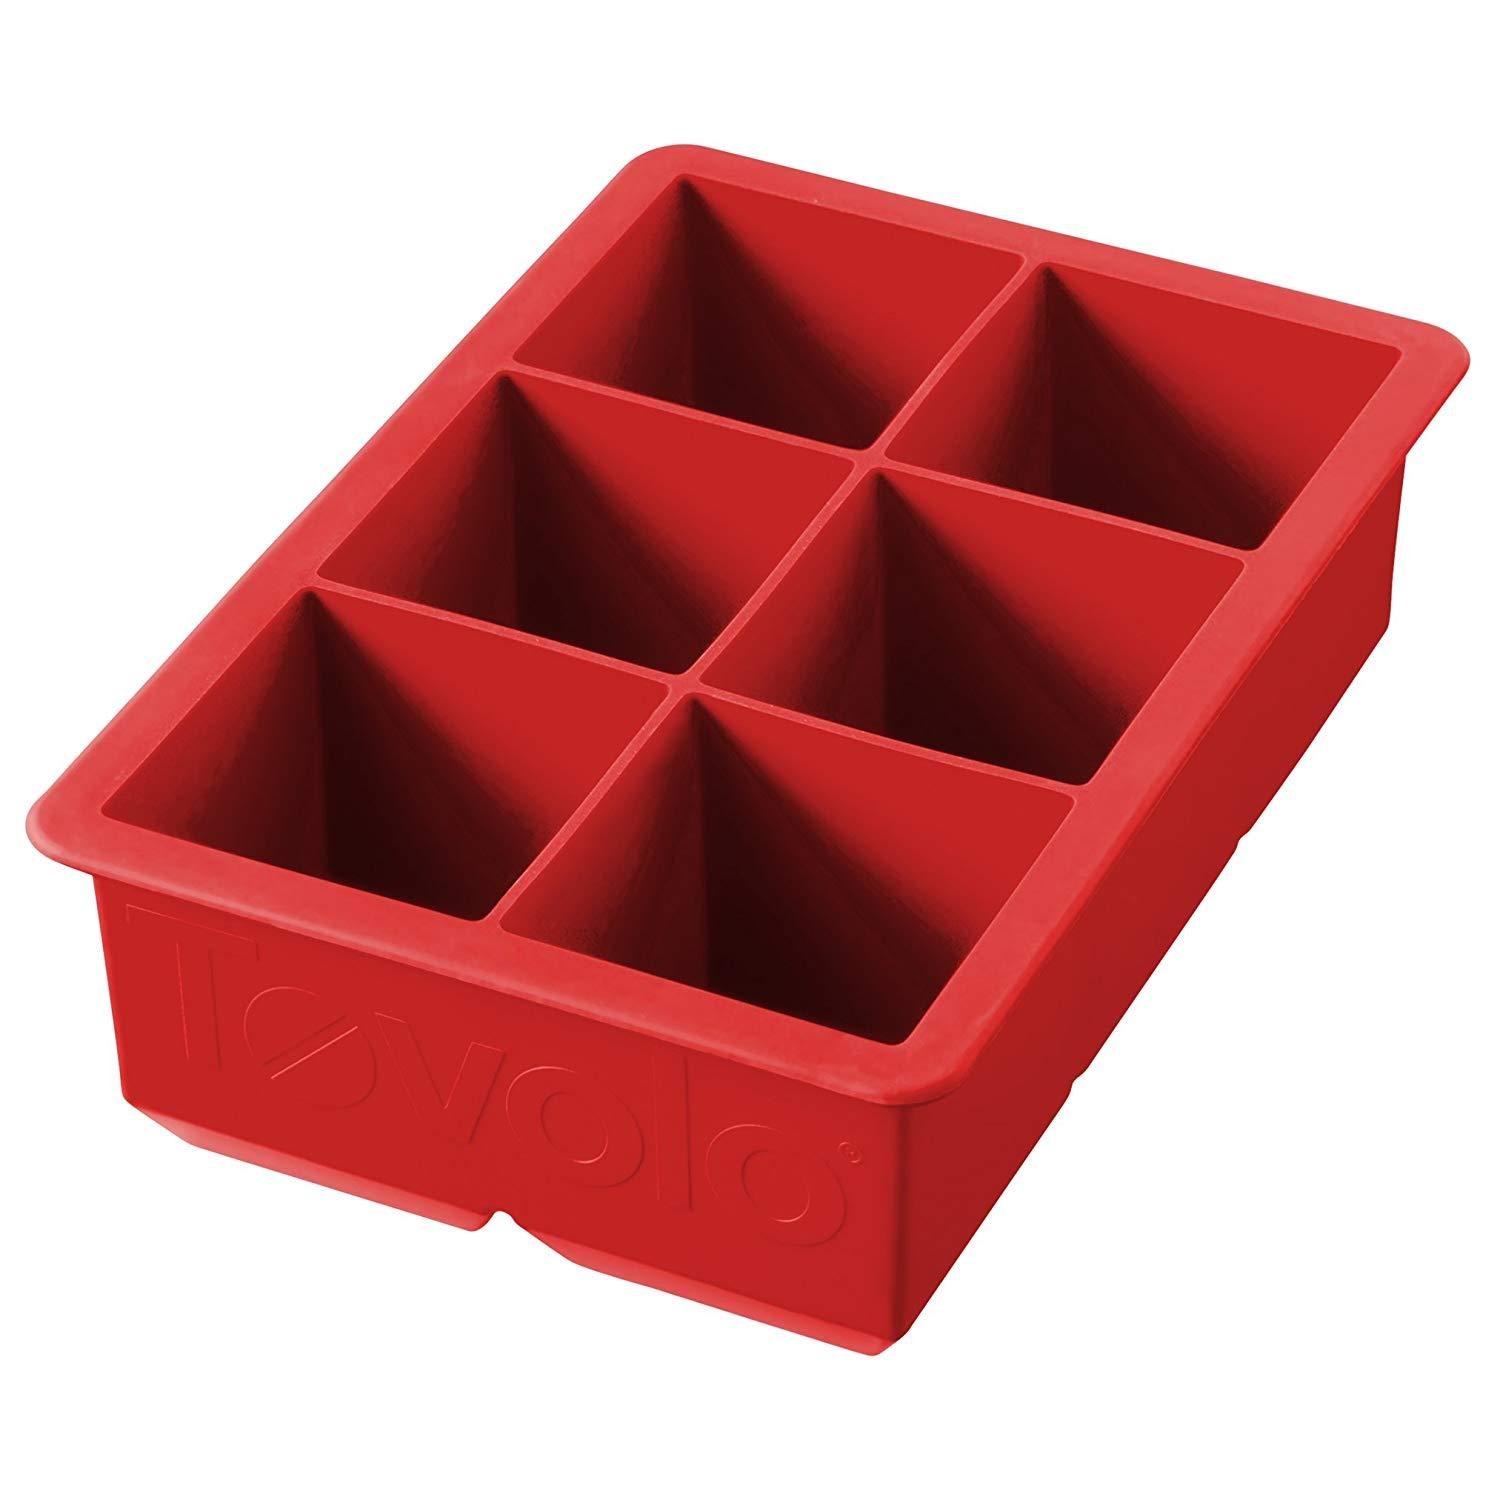 Tovolo 81-9110, King Cube Ice Tray, Candy Apple